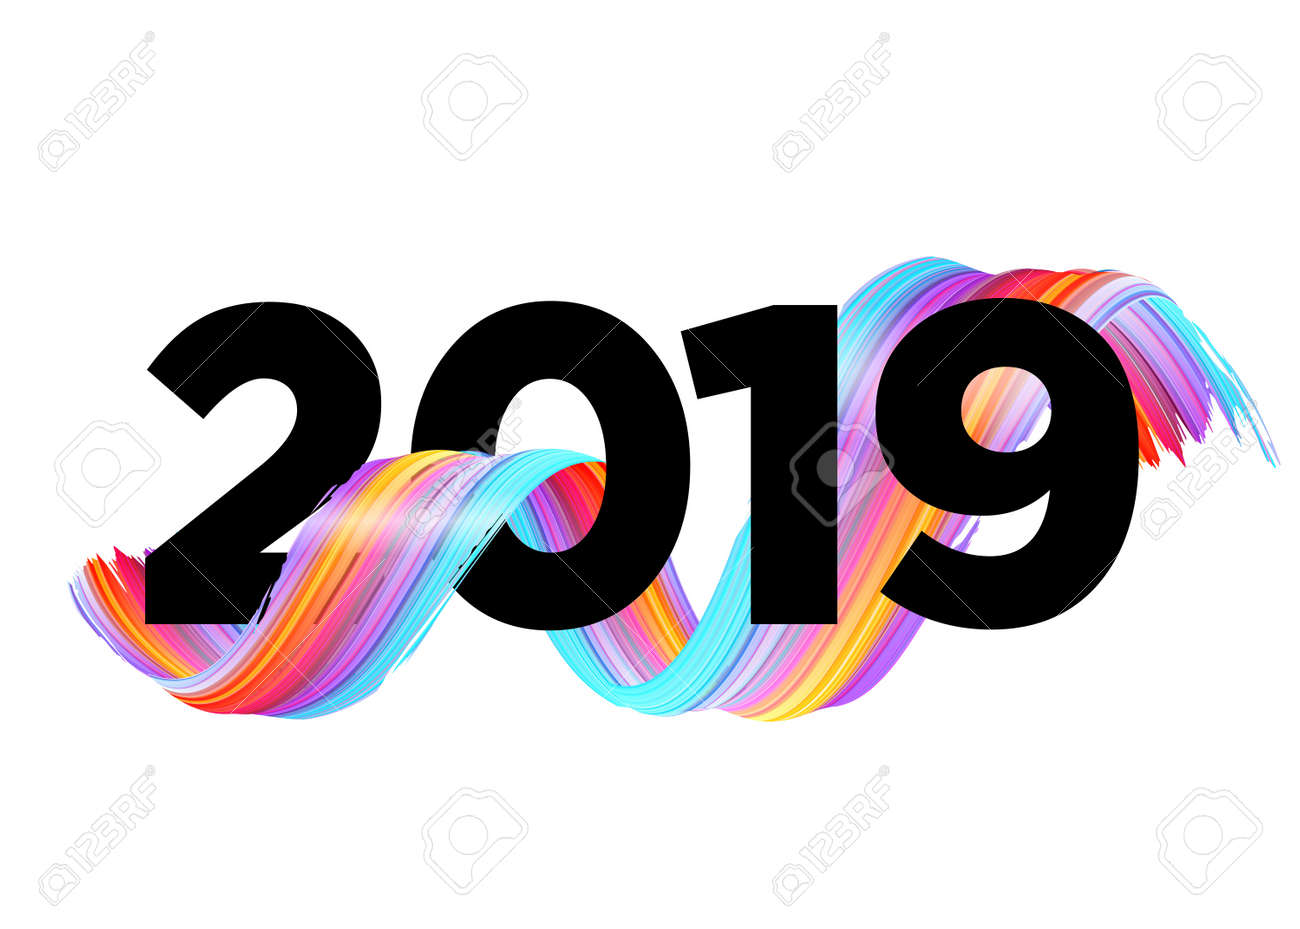 2019 happy new year logo design vector background with abstract splash shape colorful illustration